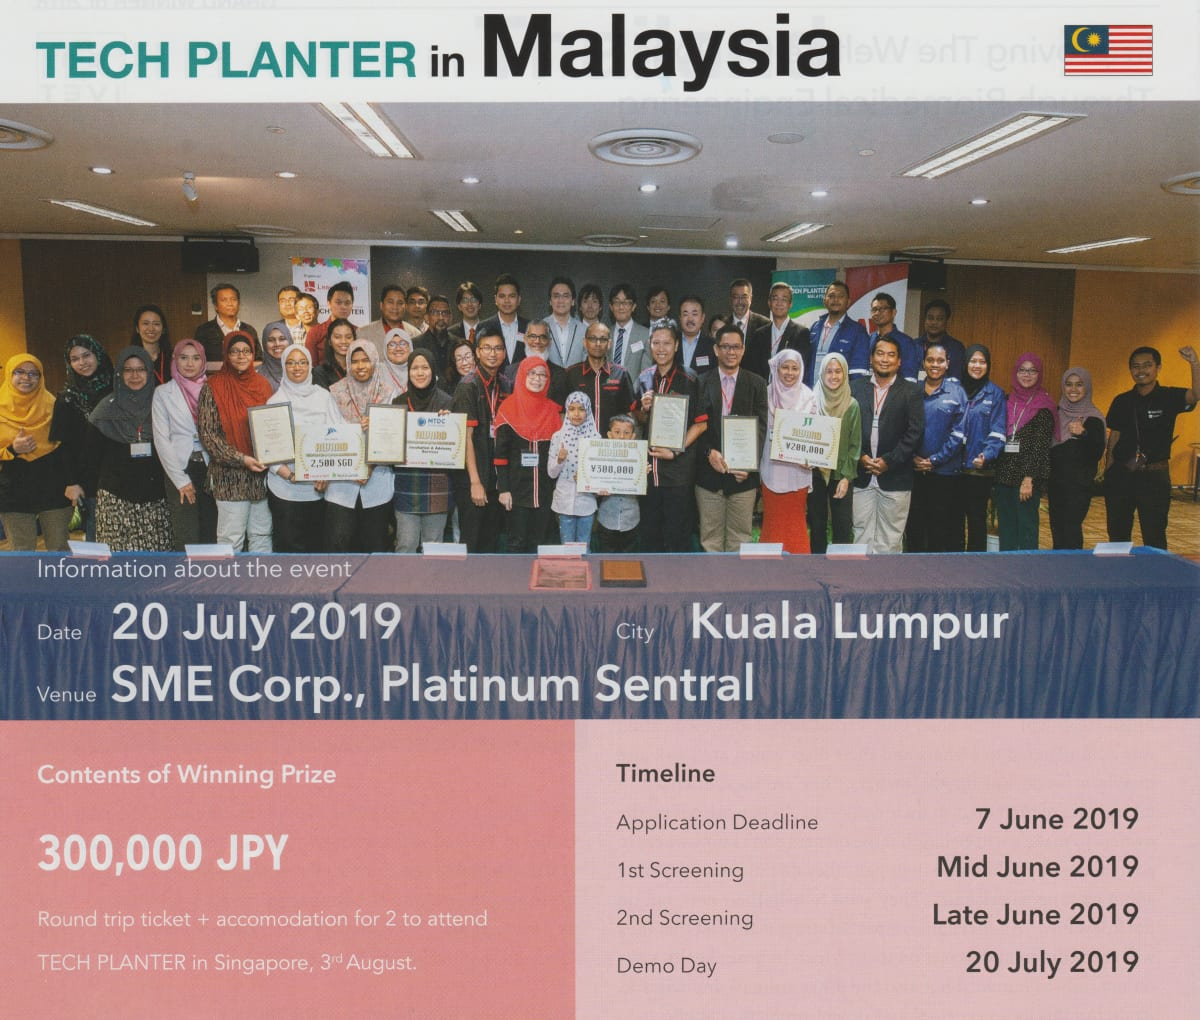 Applications for TECH PLANTER in Malaysia 2019 has closed with 32 entries!